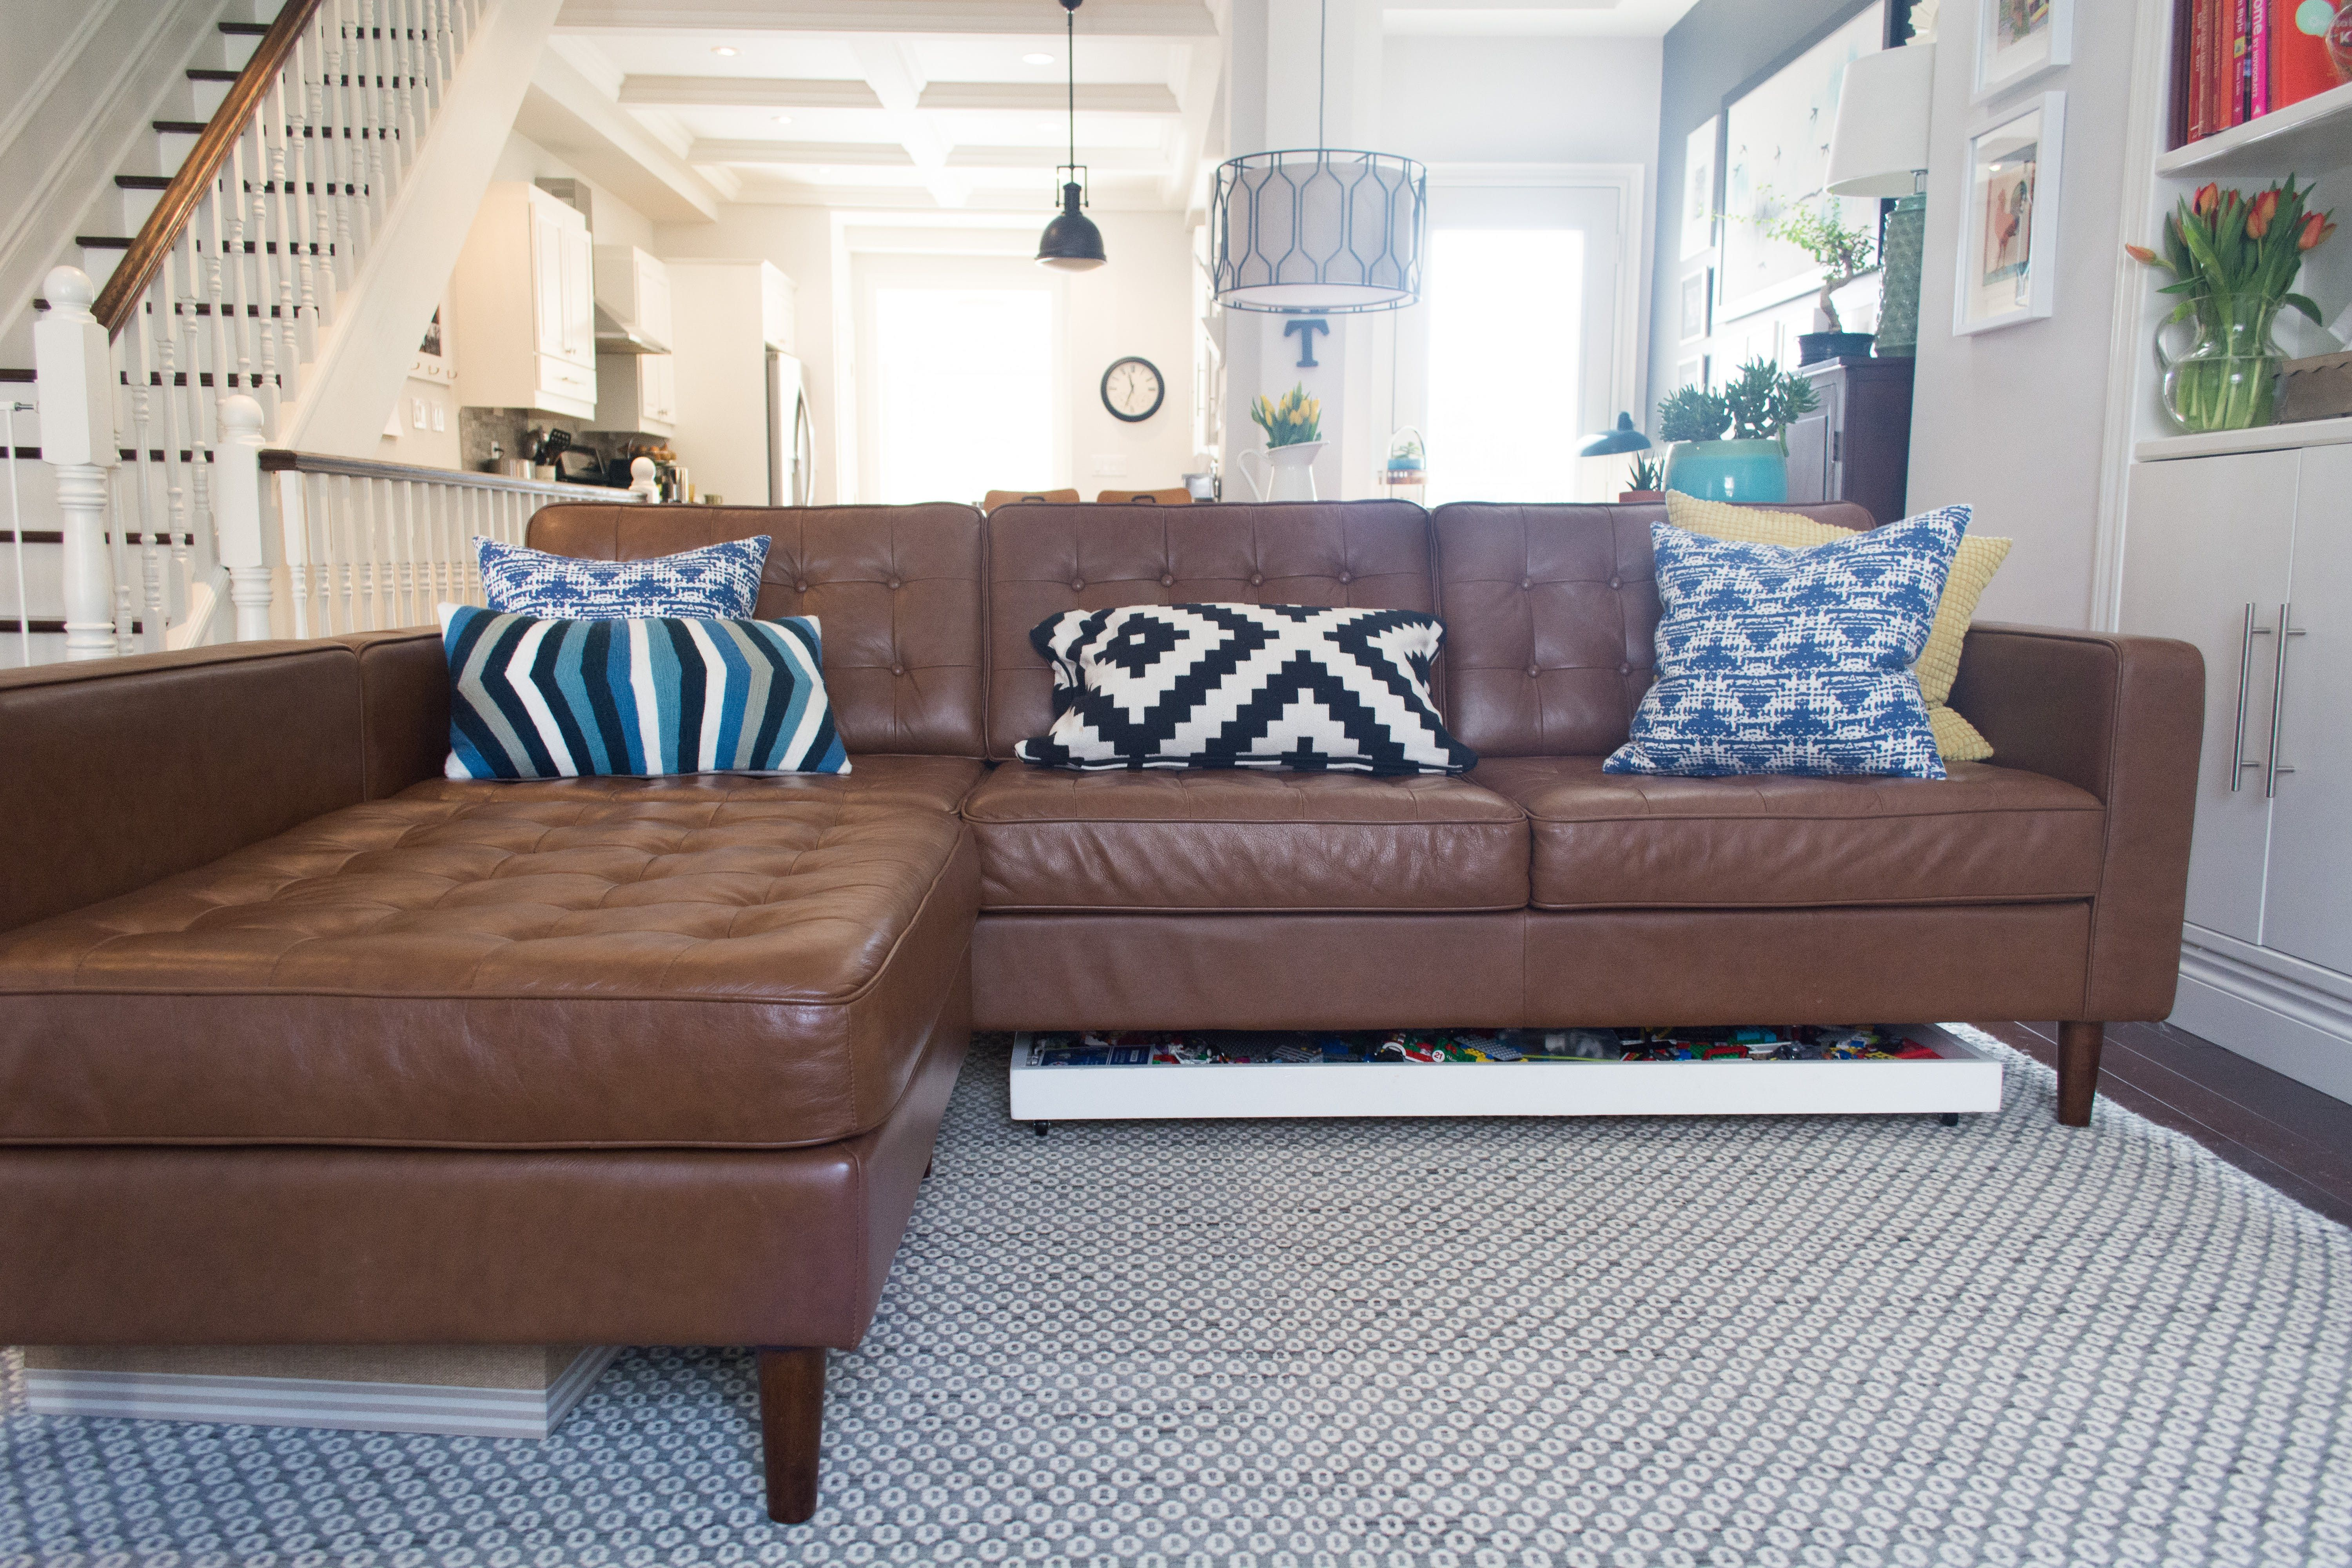 A Young Family Makes Their Mark On A Recently Reno D Toronto Home Home Rugs In Living Room Easy Home Decor